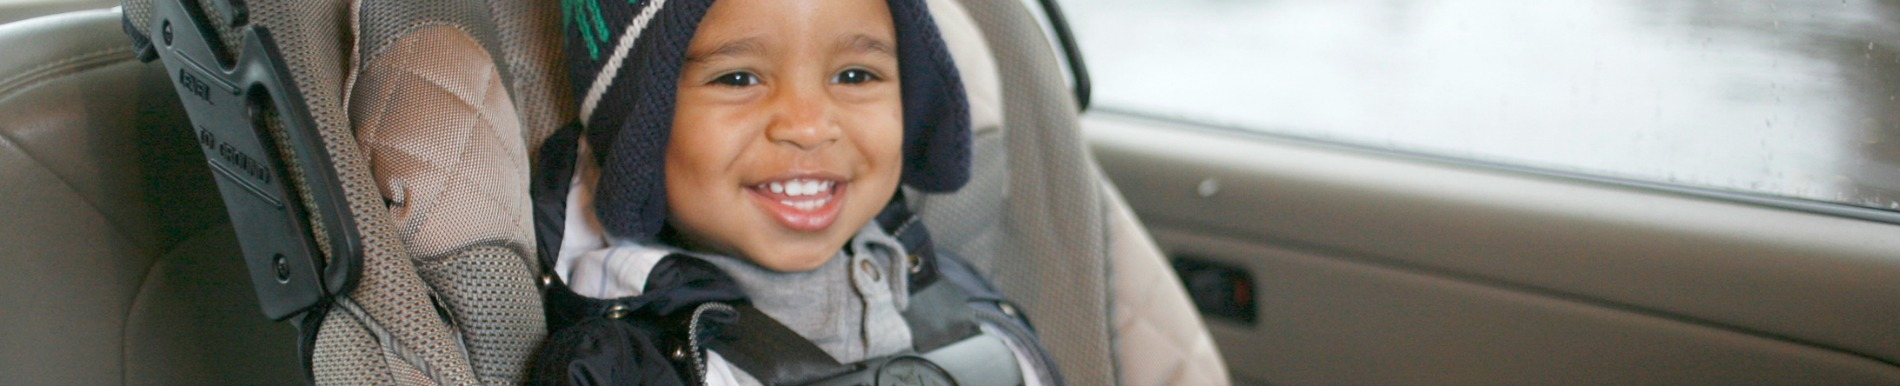 https://www.healthychildren.org/SiteCollectionImage-Homepage-Banners/WinterCarSeatTips_Banner_Yes.jpg